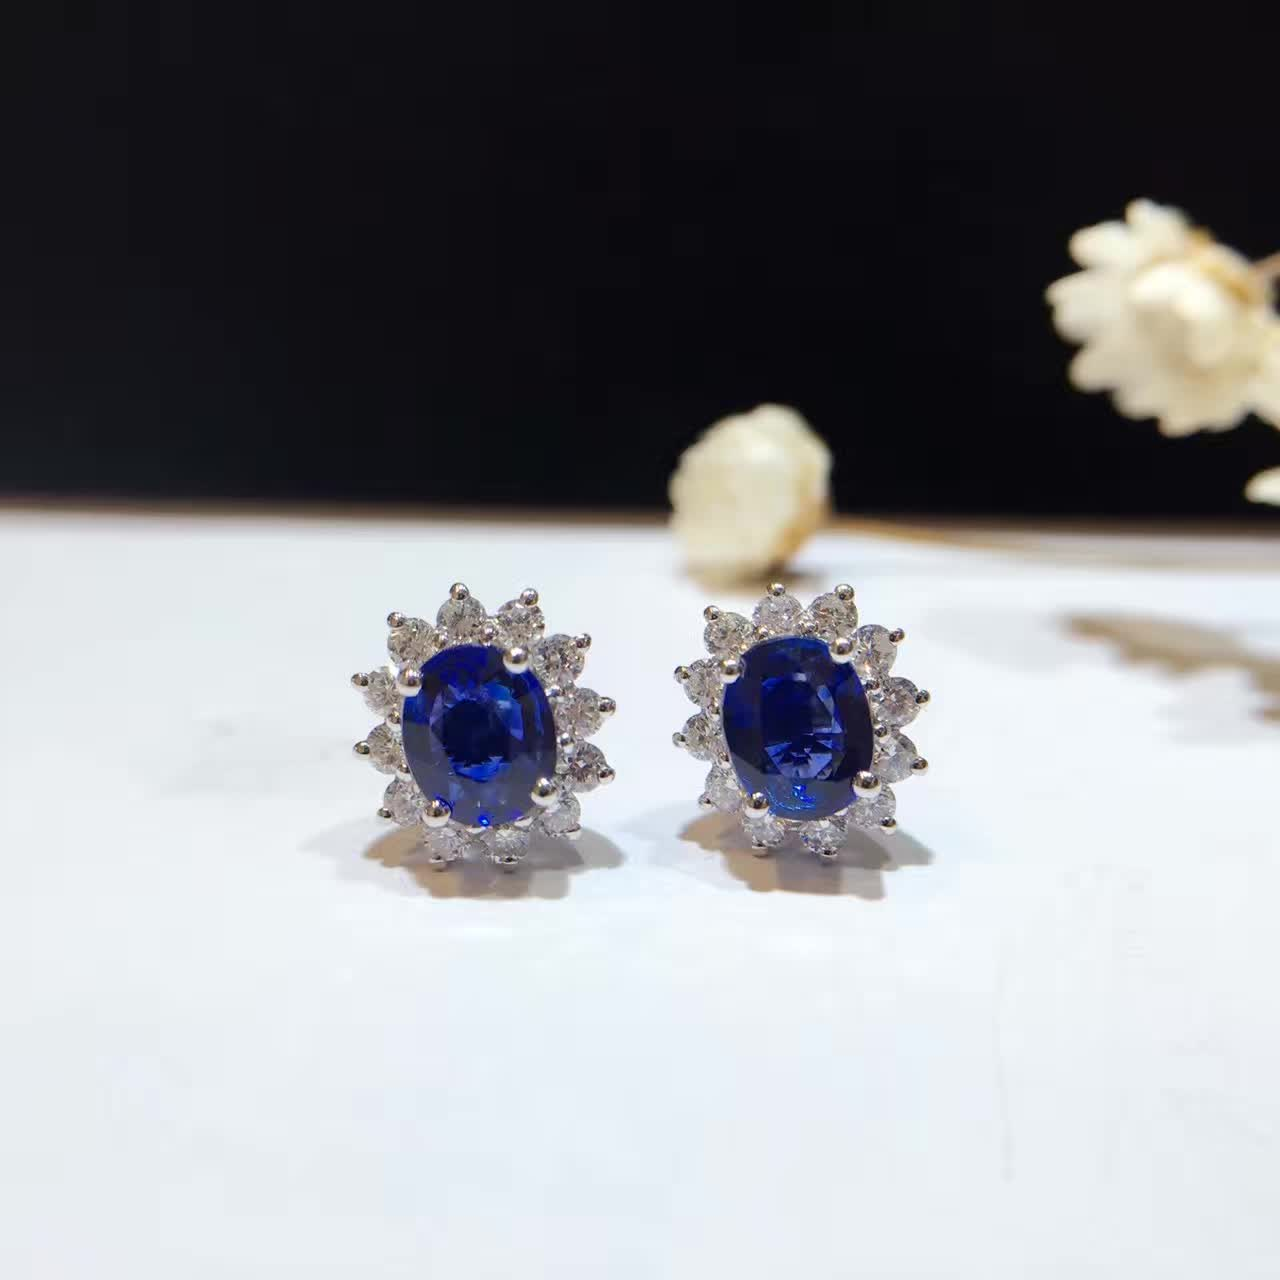 18k Gold 1443ct Natural Sapphire Stud Earrings For Women 0474ct Diamond  Encrusted Free Shipping Sapphirejewelry